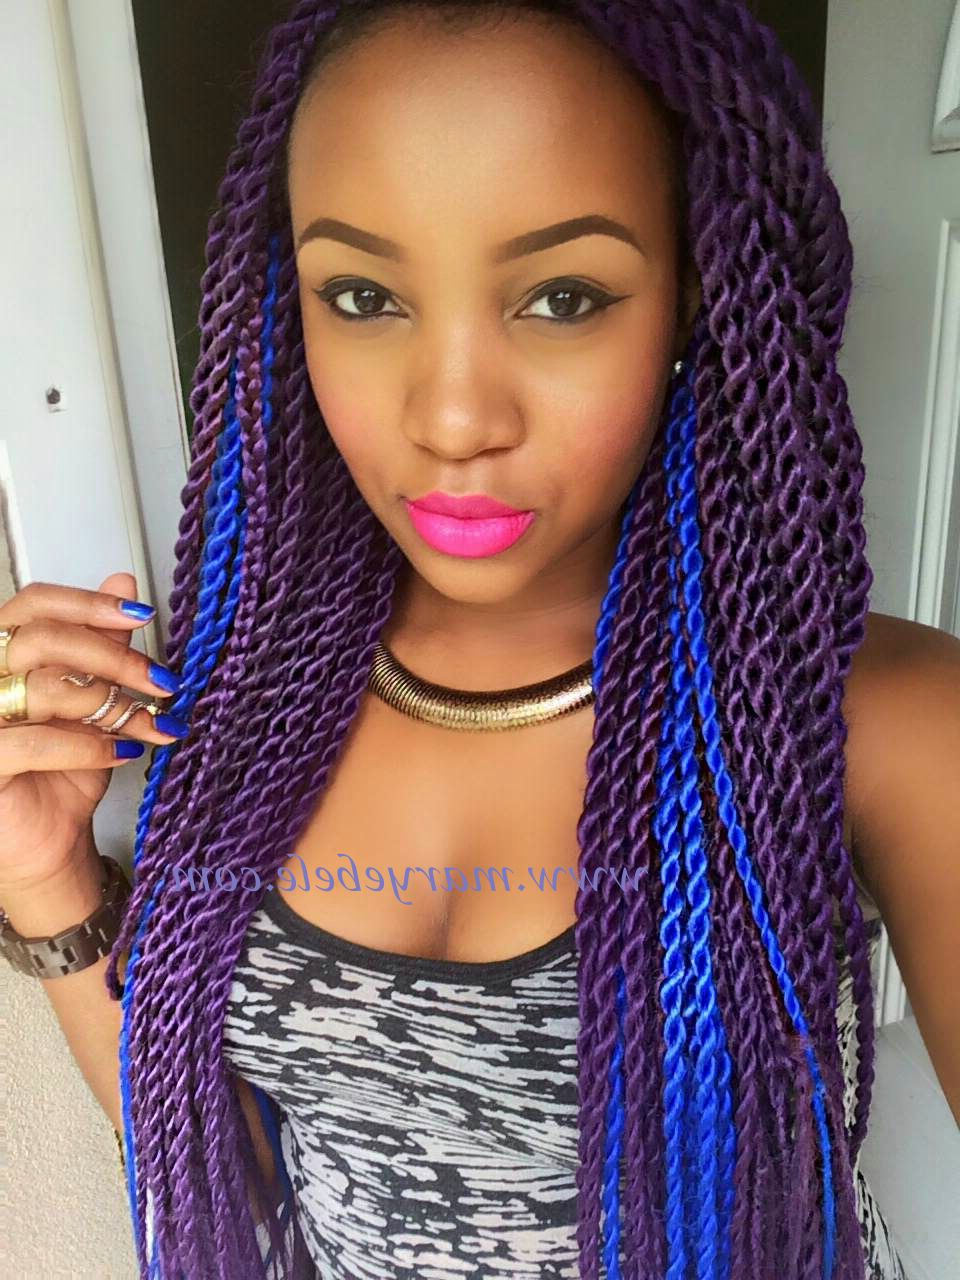 Famous Pastel Colored Updo Hairstyles With Rope Twist Pertaining To Purple & Blue Braids. Peace, Love & Unicorns (View 5 of 20)